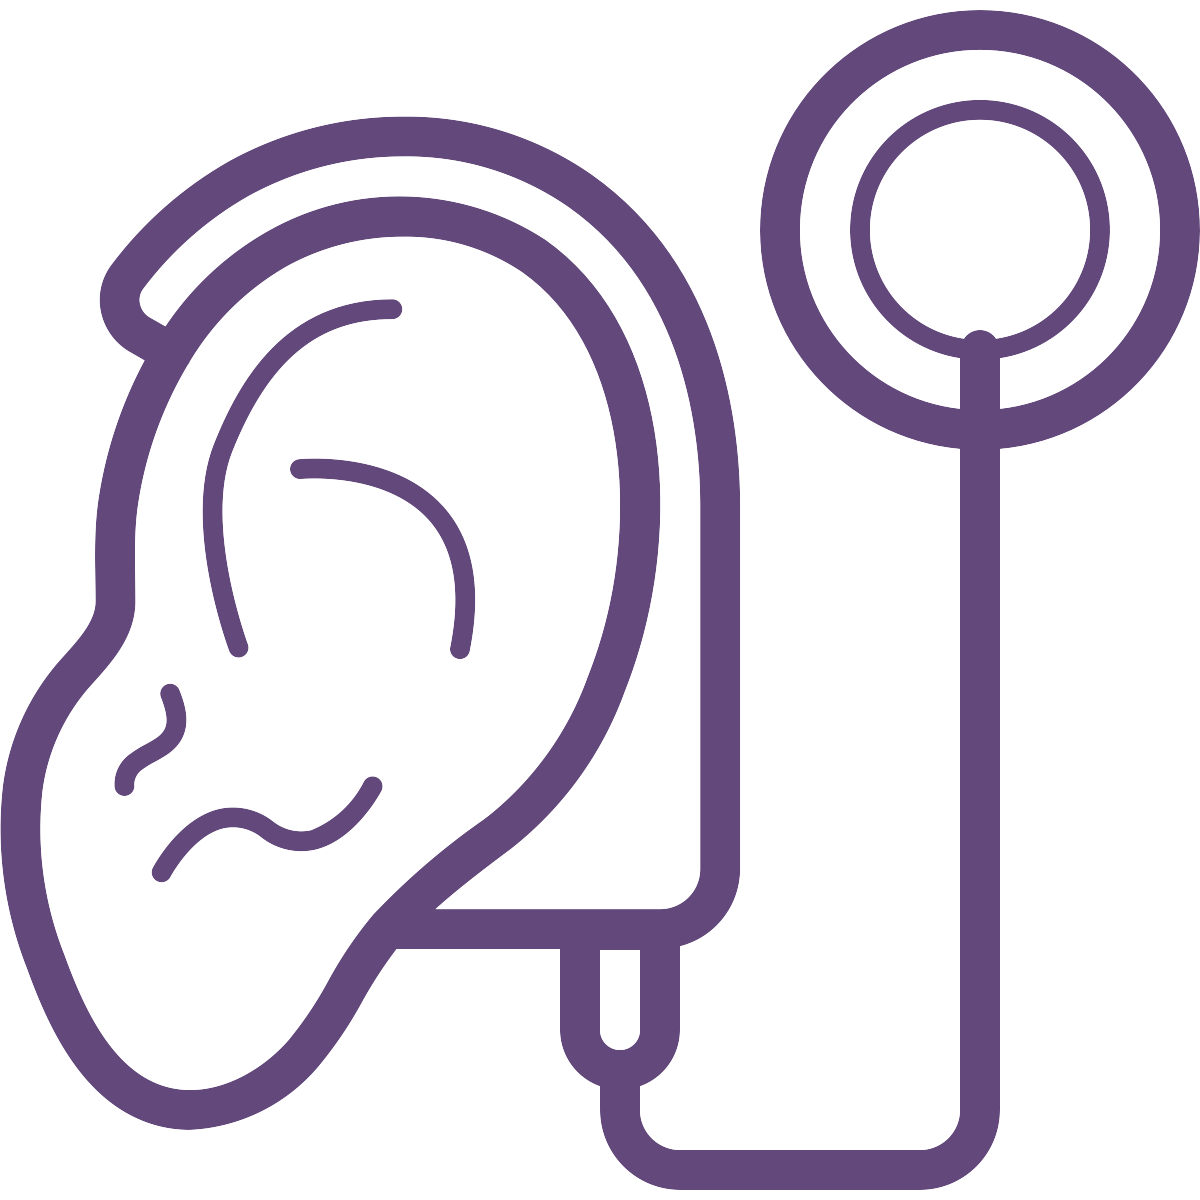 noun_Cochlear Implant_1465376_62487b.png